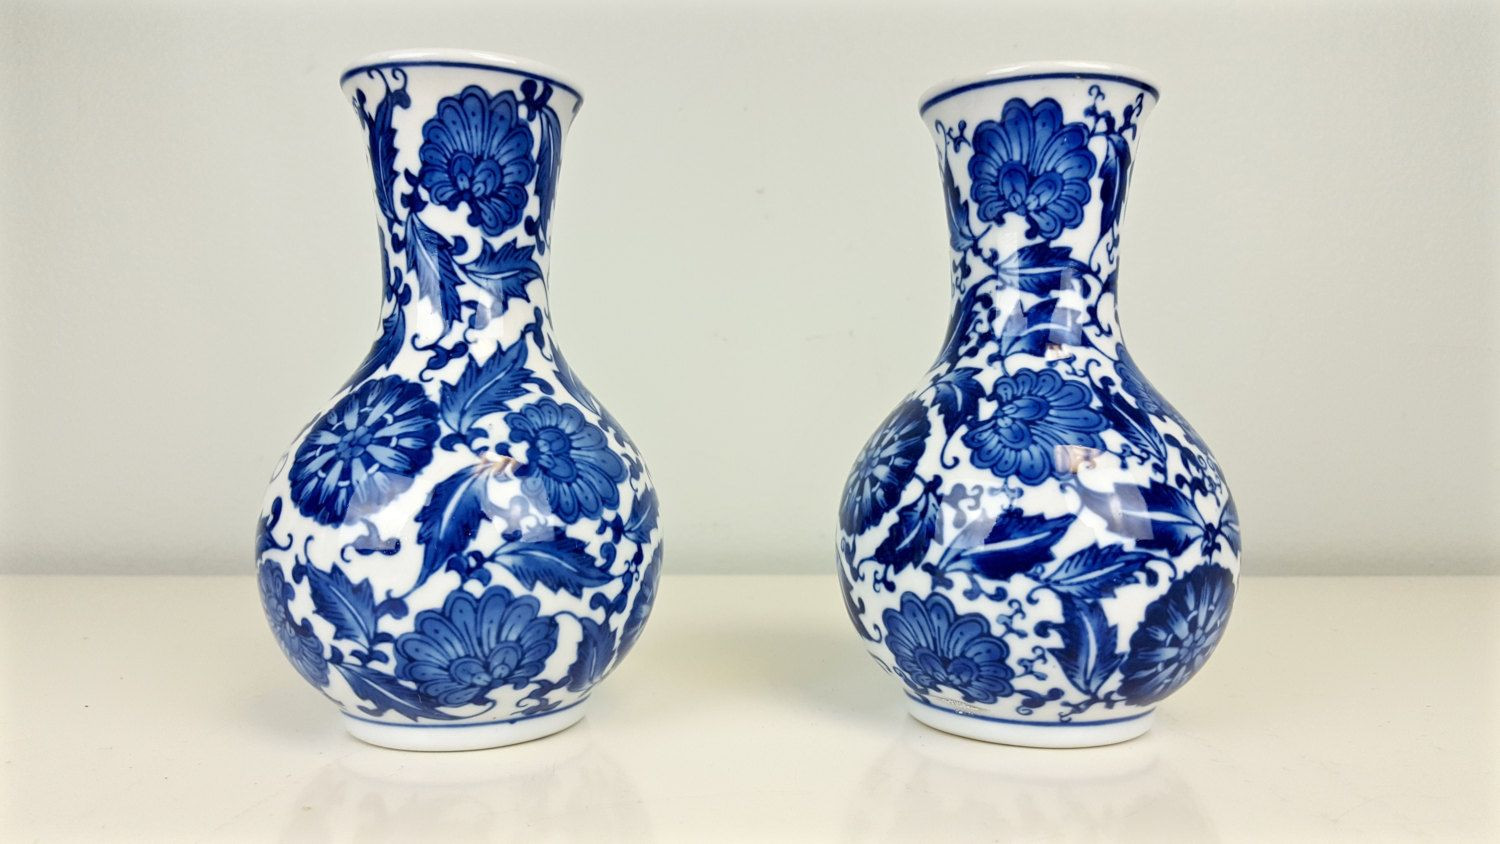 blue and white floral ceramic vase of pair cobalt white floral chinese vases cobalt blue and white bud in pair cobalt white floral chinese vases cobalt blue and white bud vases bombay china cobalt blue vases classic blue white decor by curioboxx on etsy